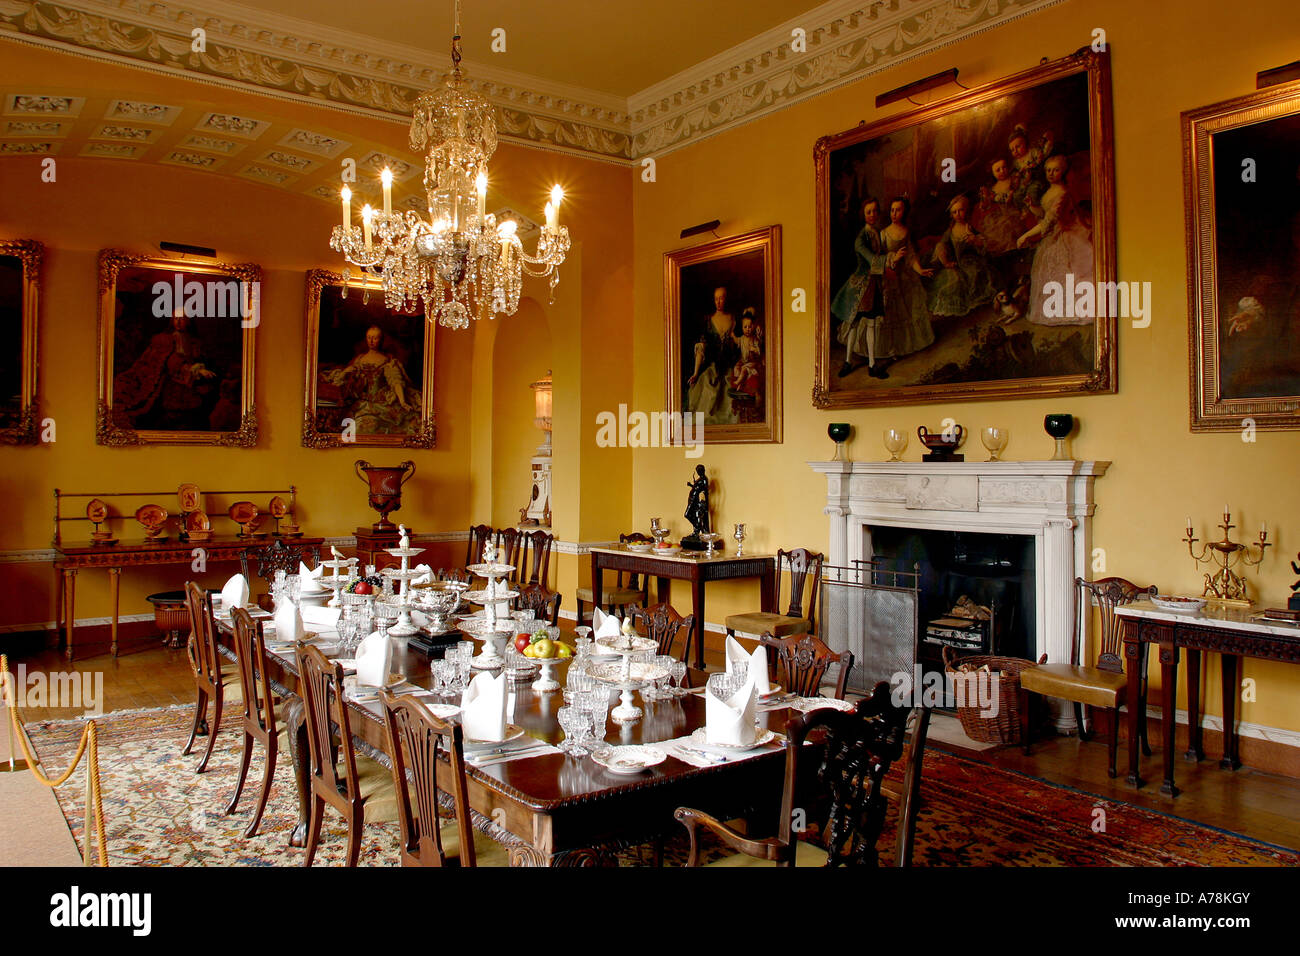 Uk yorkshire ripon newby hall regency dining room stock for Best restaurants with rooms yorkshire